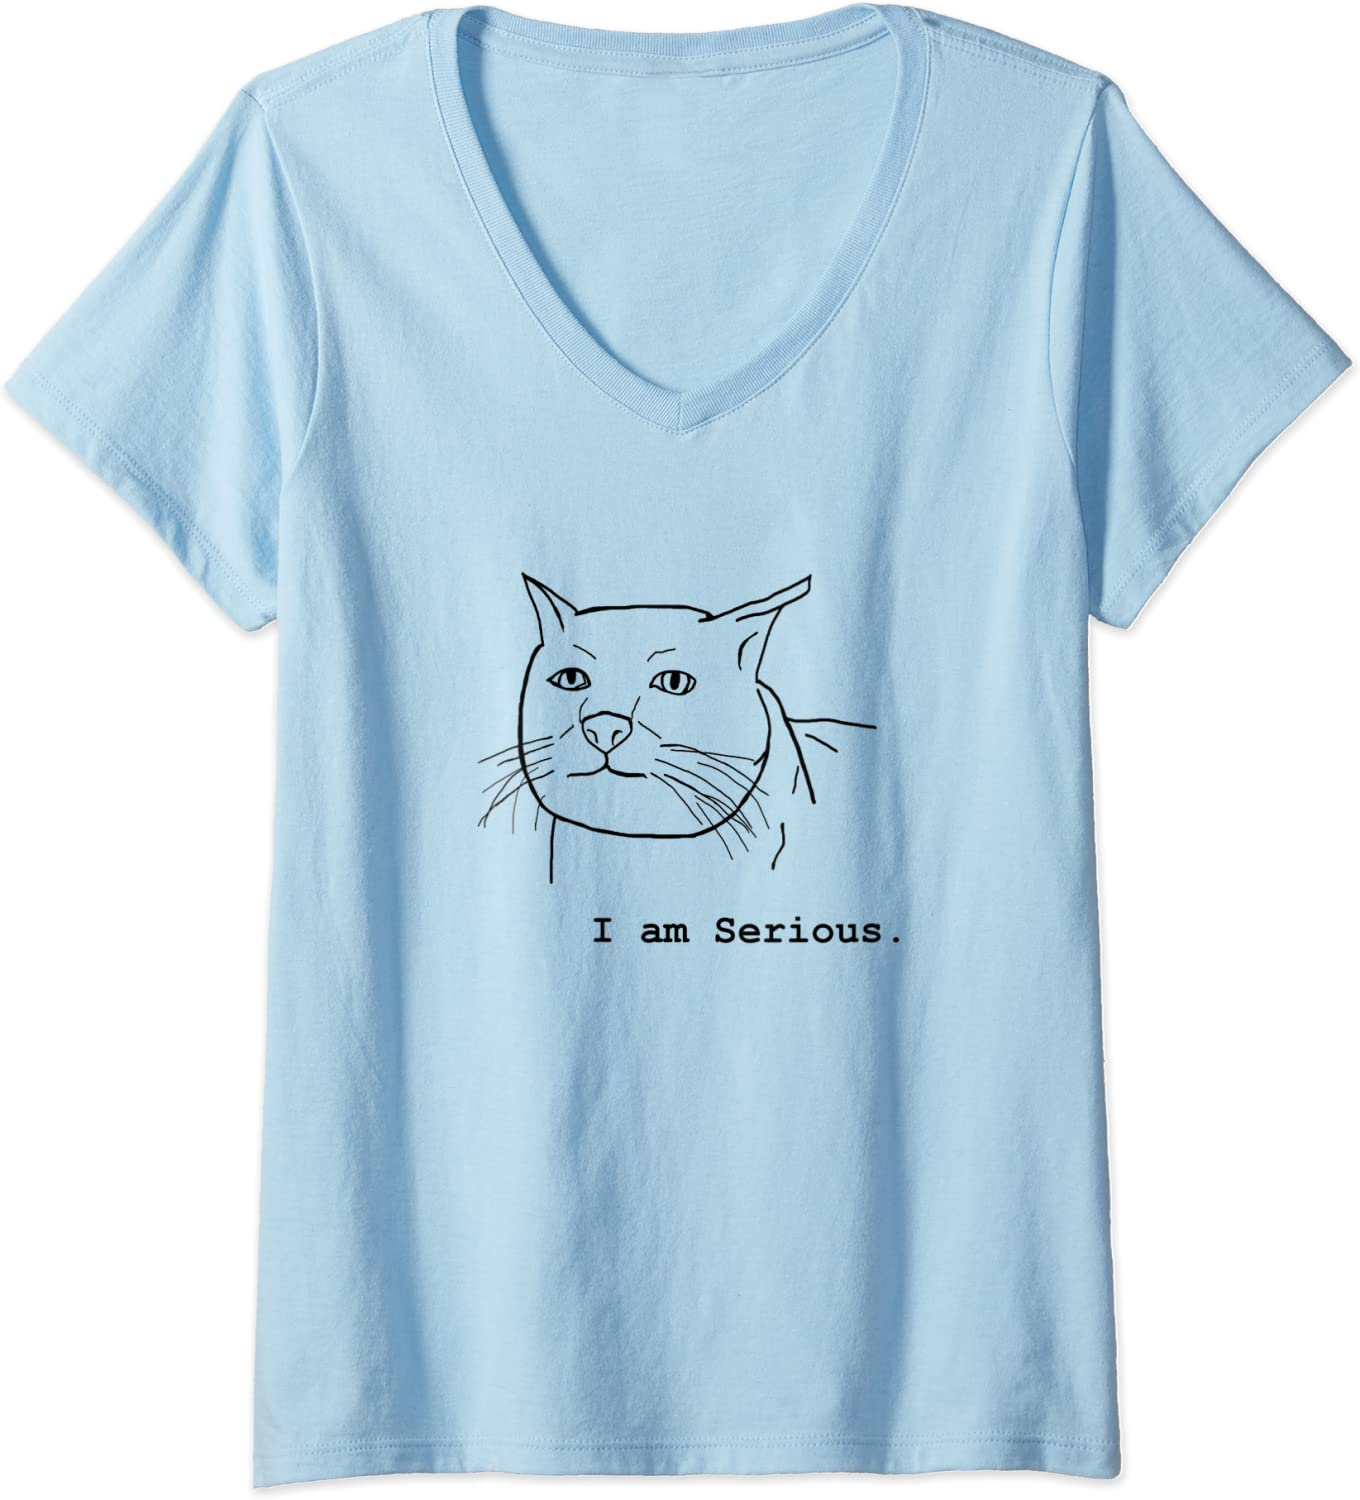 I M Here to Pet All The Cats T Shirt Cat Women Girl Tee Funny Short Sleeve Top